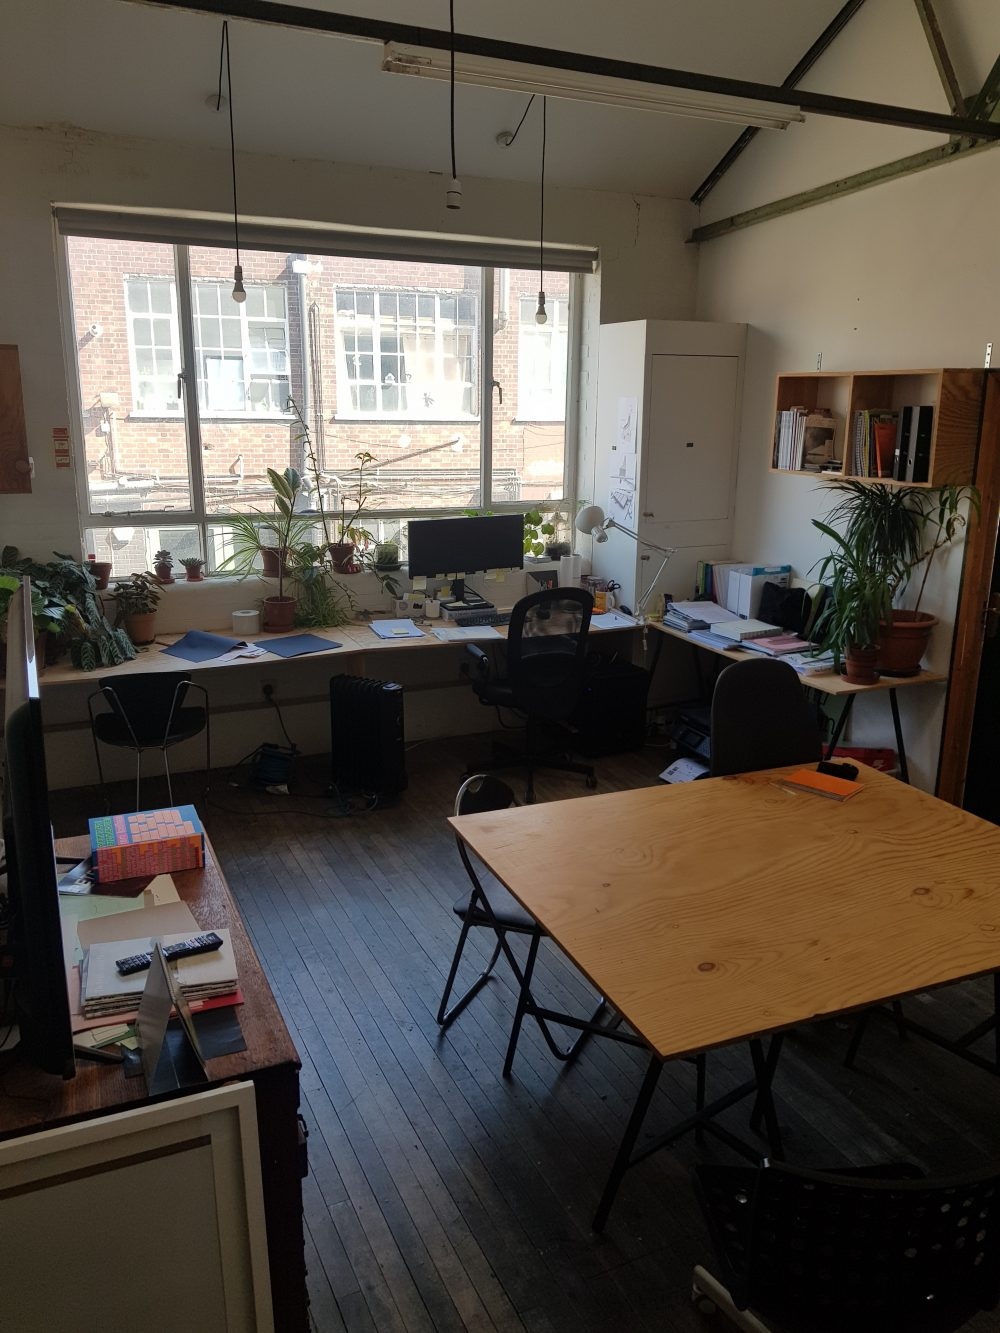 Light indurstrial unit to rent in N15 Markfield rd Gaunson House Studio B and C PIc24